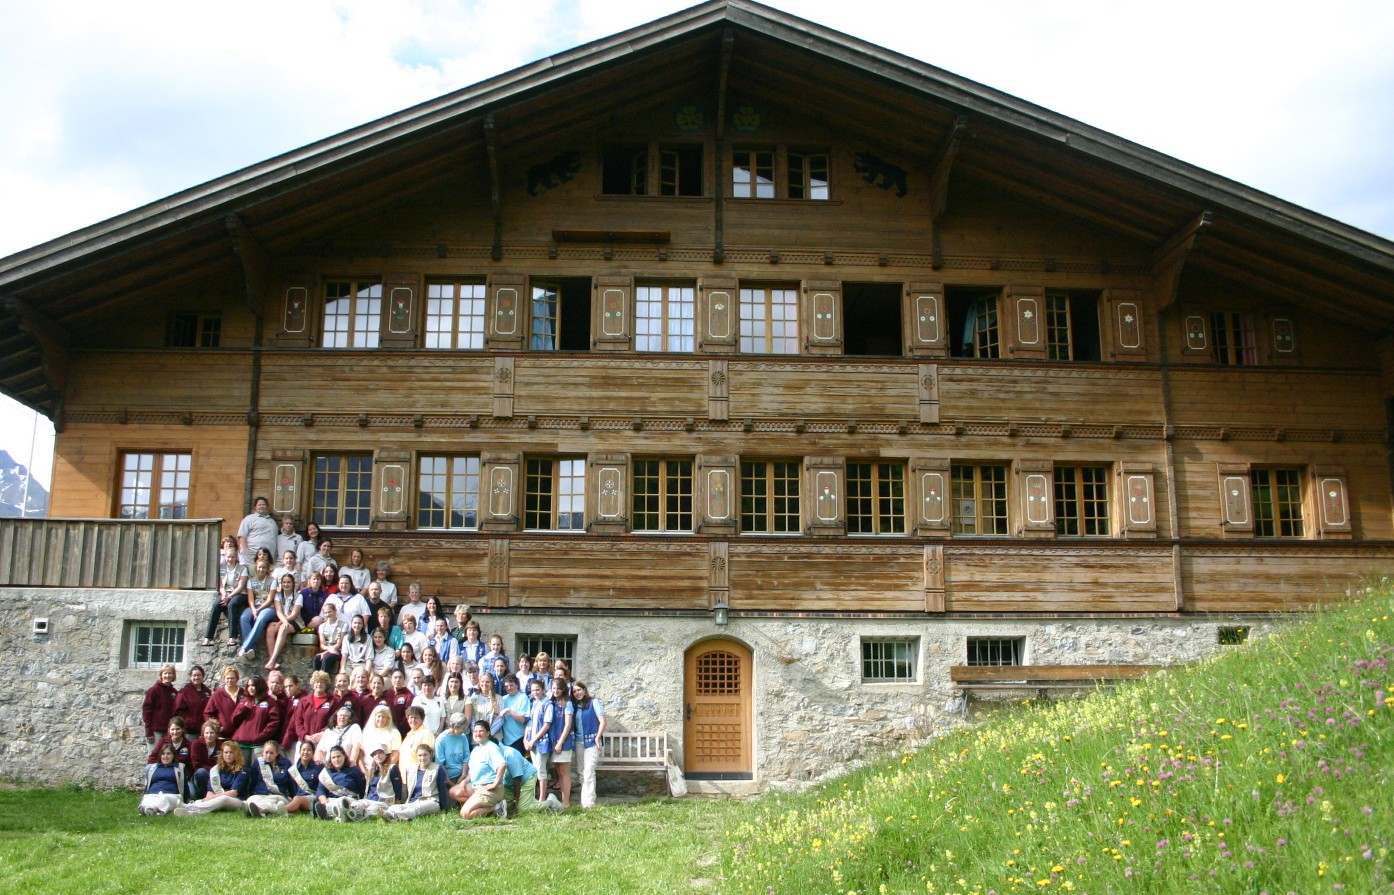 Laraghs t y blog geography project part 2 our chalet guiding in switzerland - Inter charlet ...